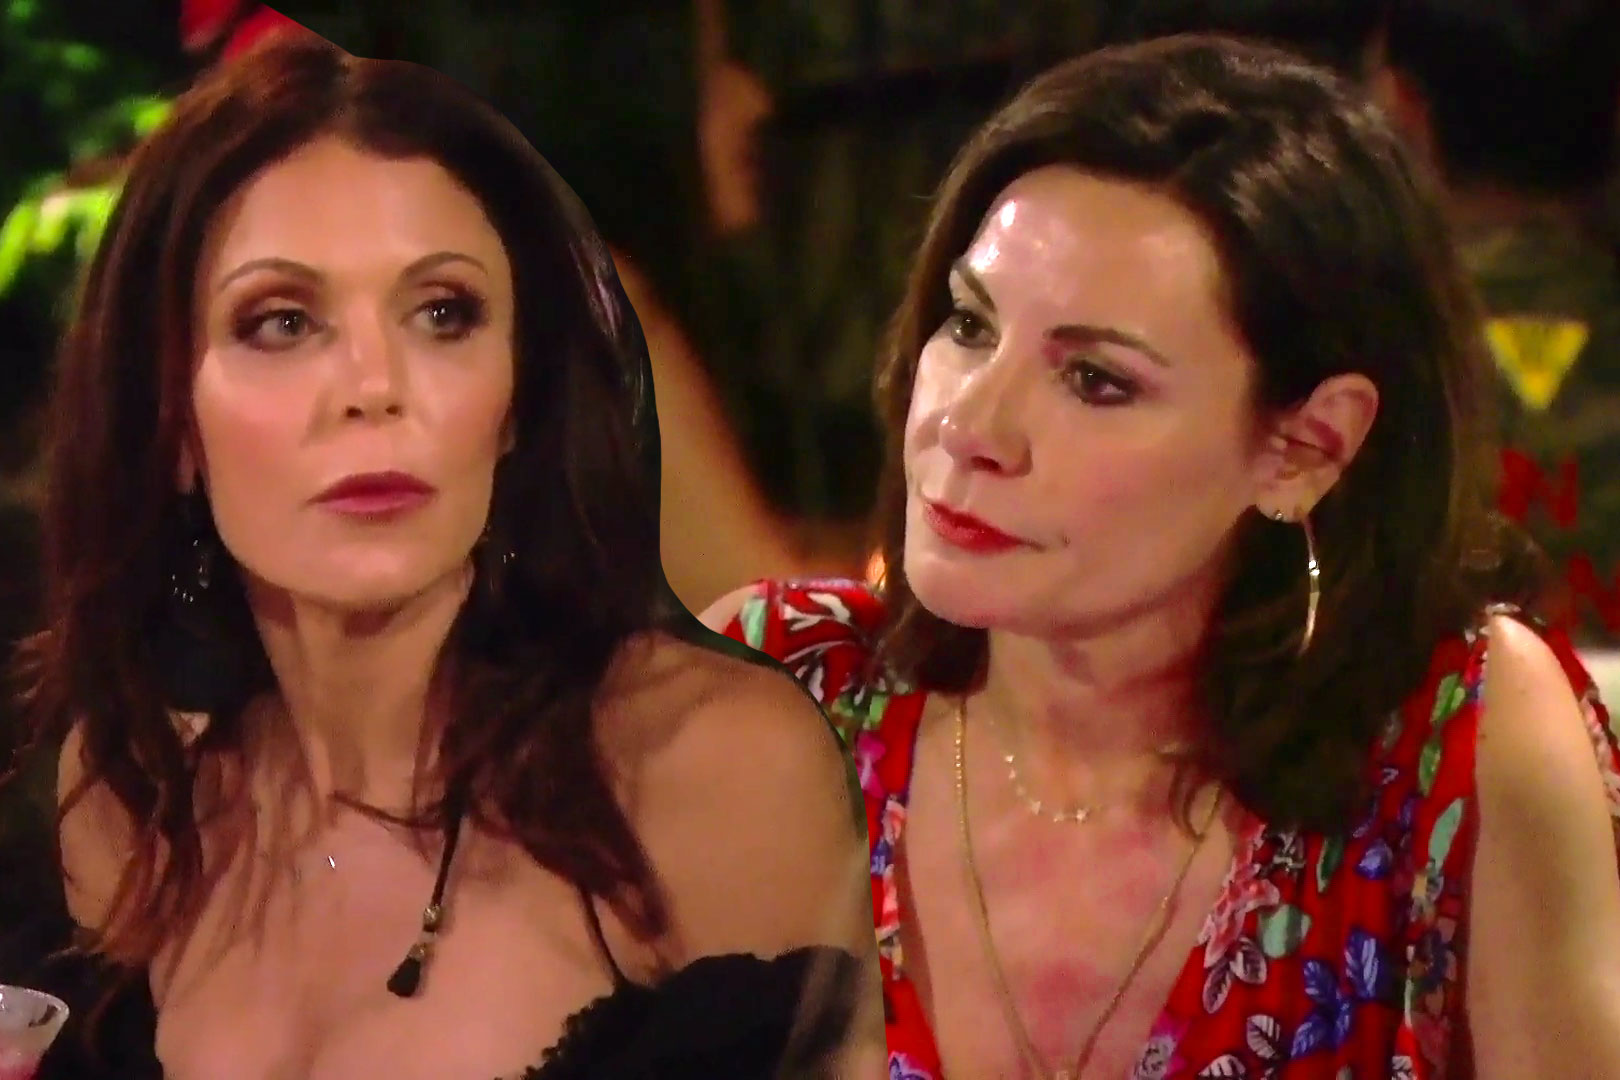 Bethenny Frankel, Luann de Lesseps Fight in Miami in The Real Housewives of New York City Season 11